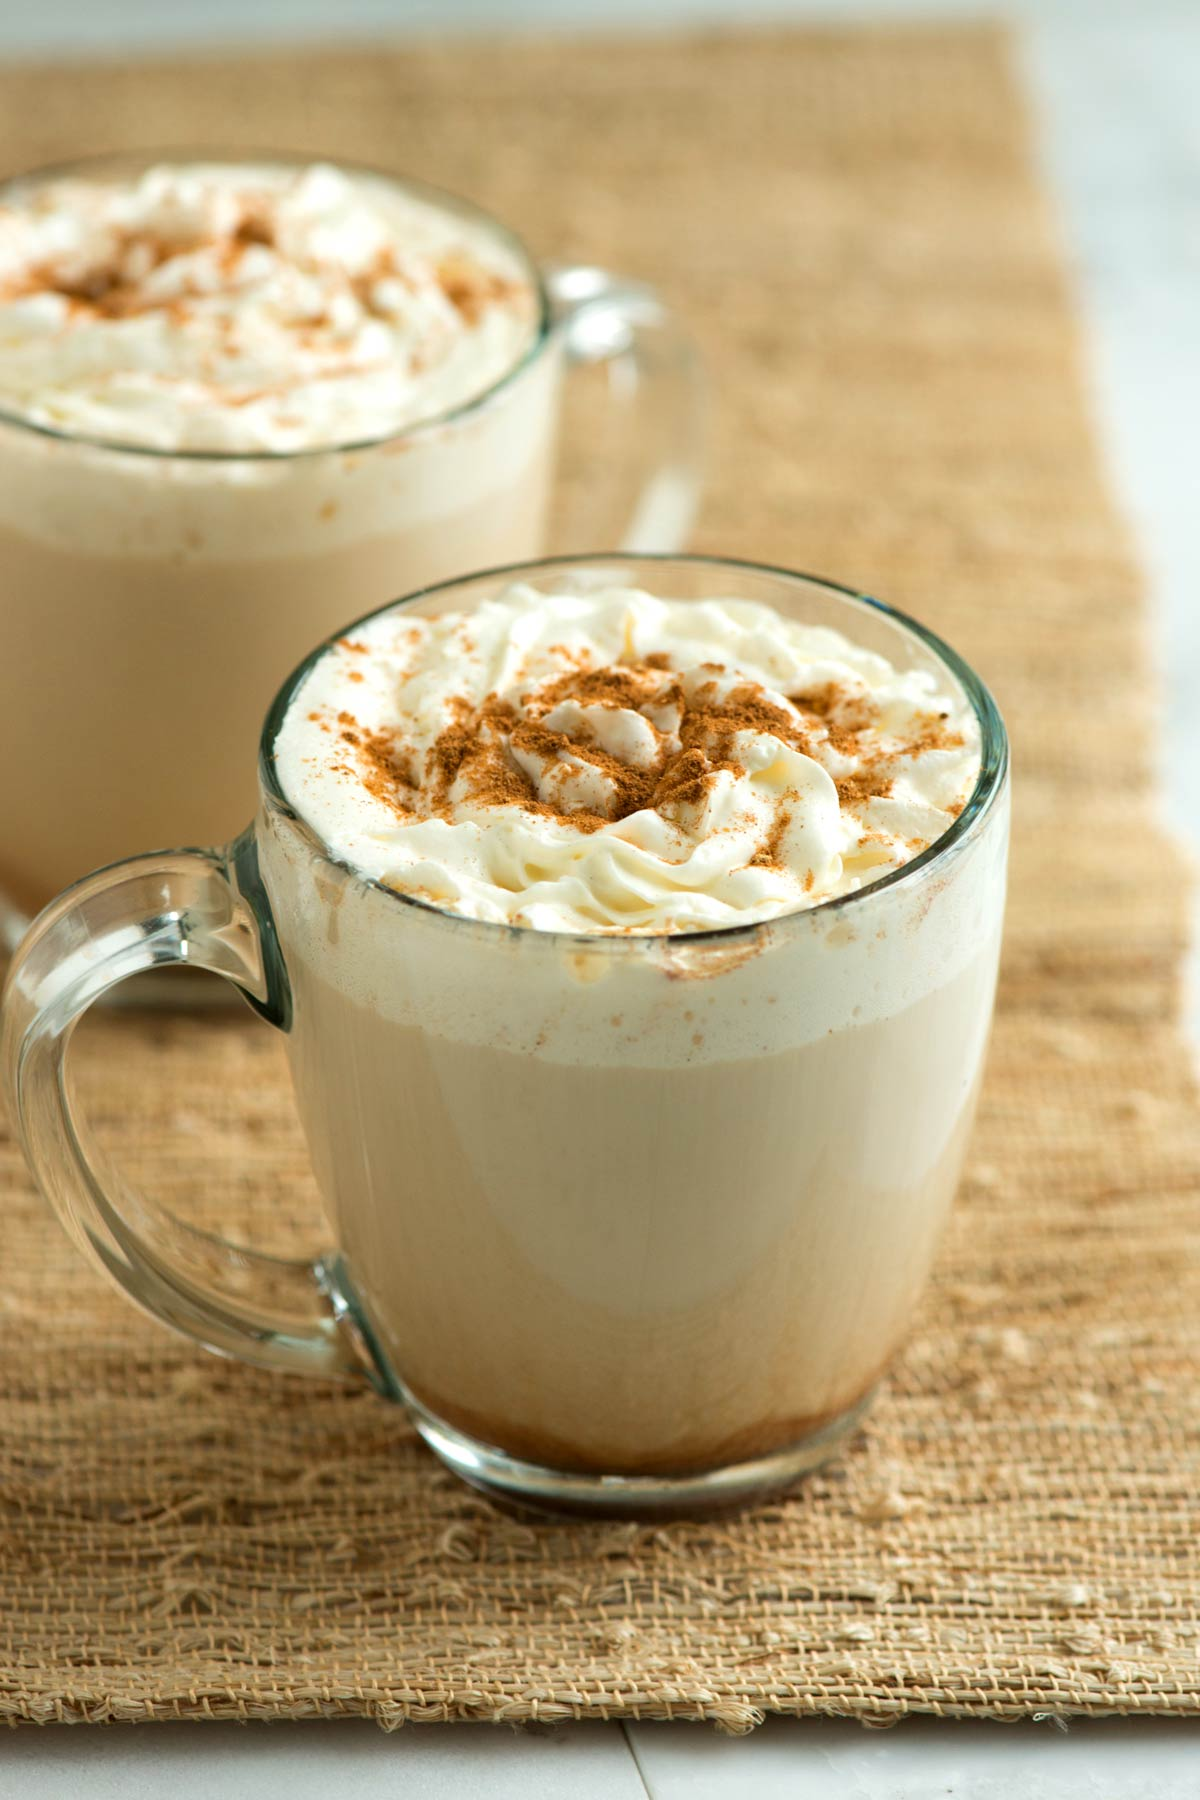 We've found 15 of the Best Pumpkin Spice Desserts and any of these amazing Fall dessert recipes would be great for a Fall Bake Sale, a Halloween Party or Thanksgiving Dinner.  You are going to have a hard time deciding which of these Halloween treats to make first.  Pin these easy to make Thanksgiving Food Ideas for later and follow us for more Thanksgiving Dessert Ideas.